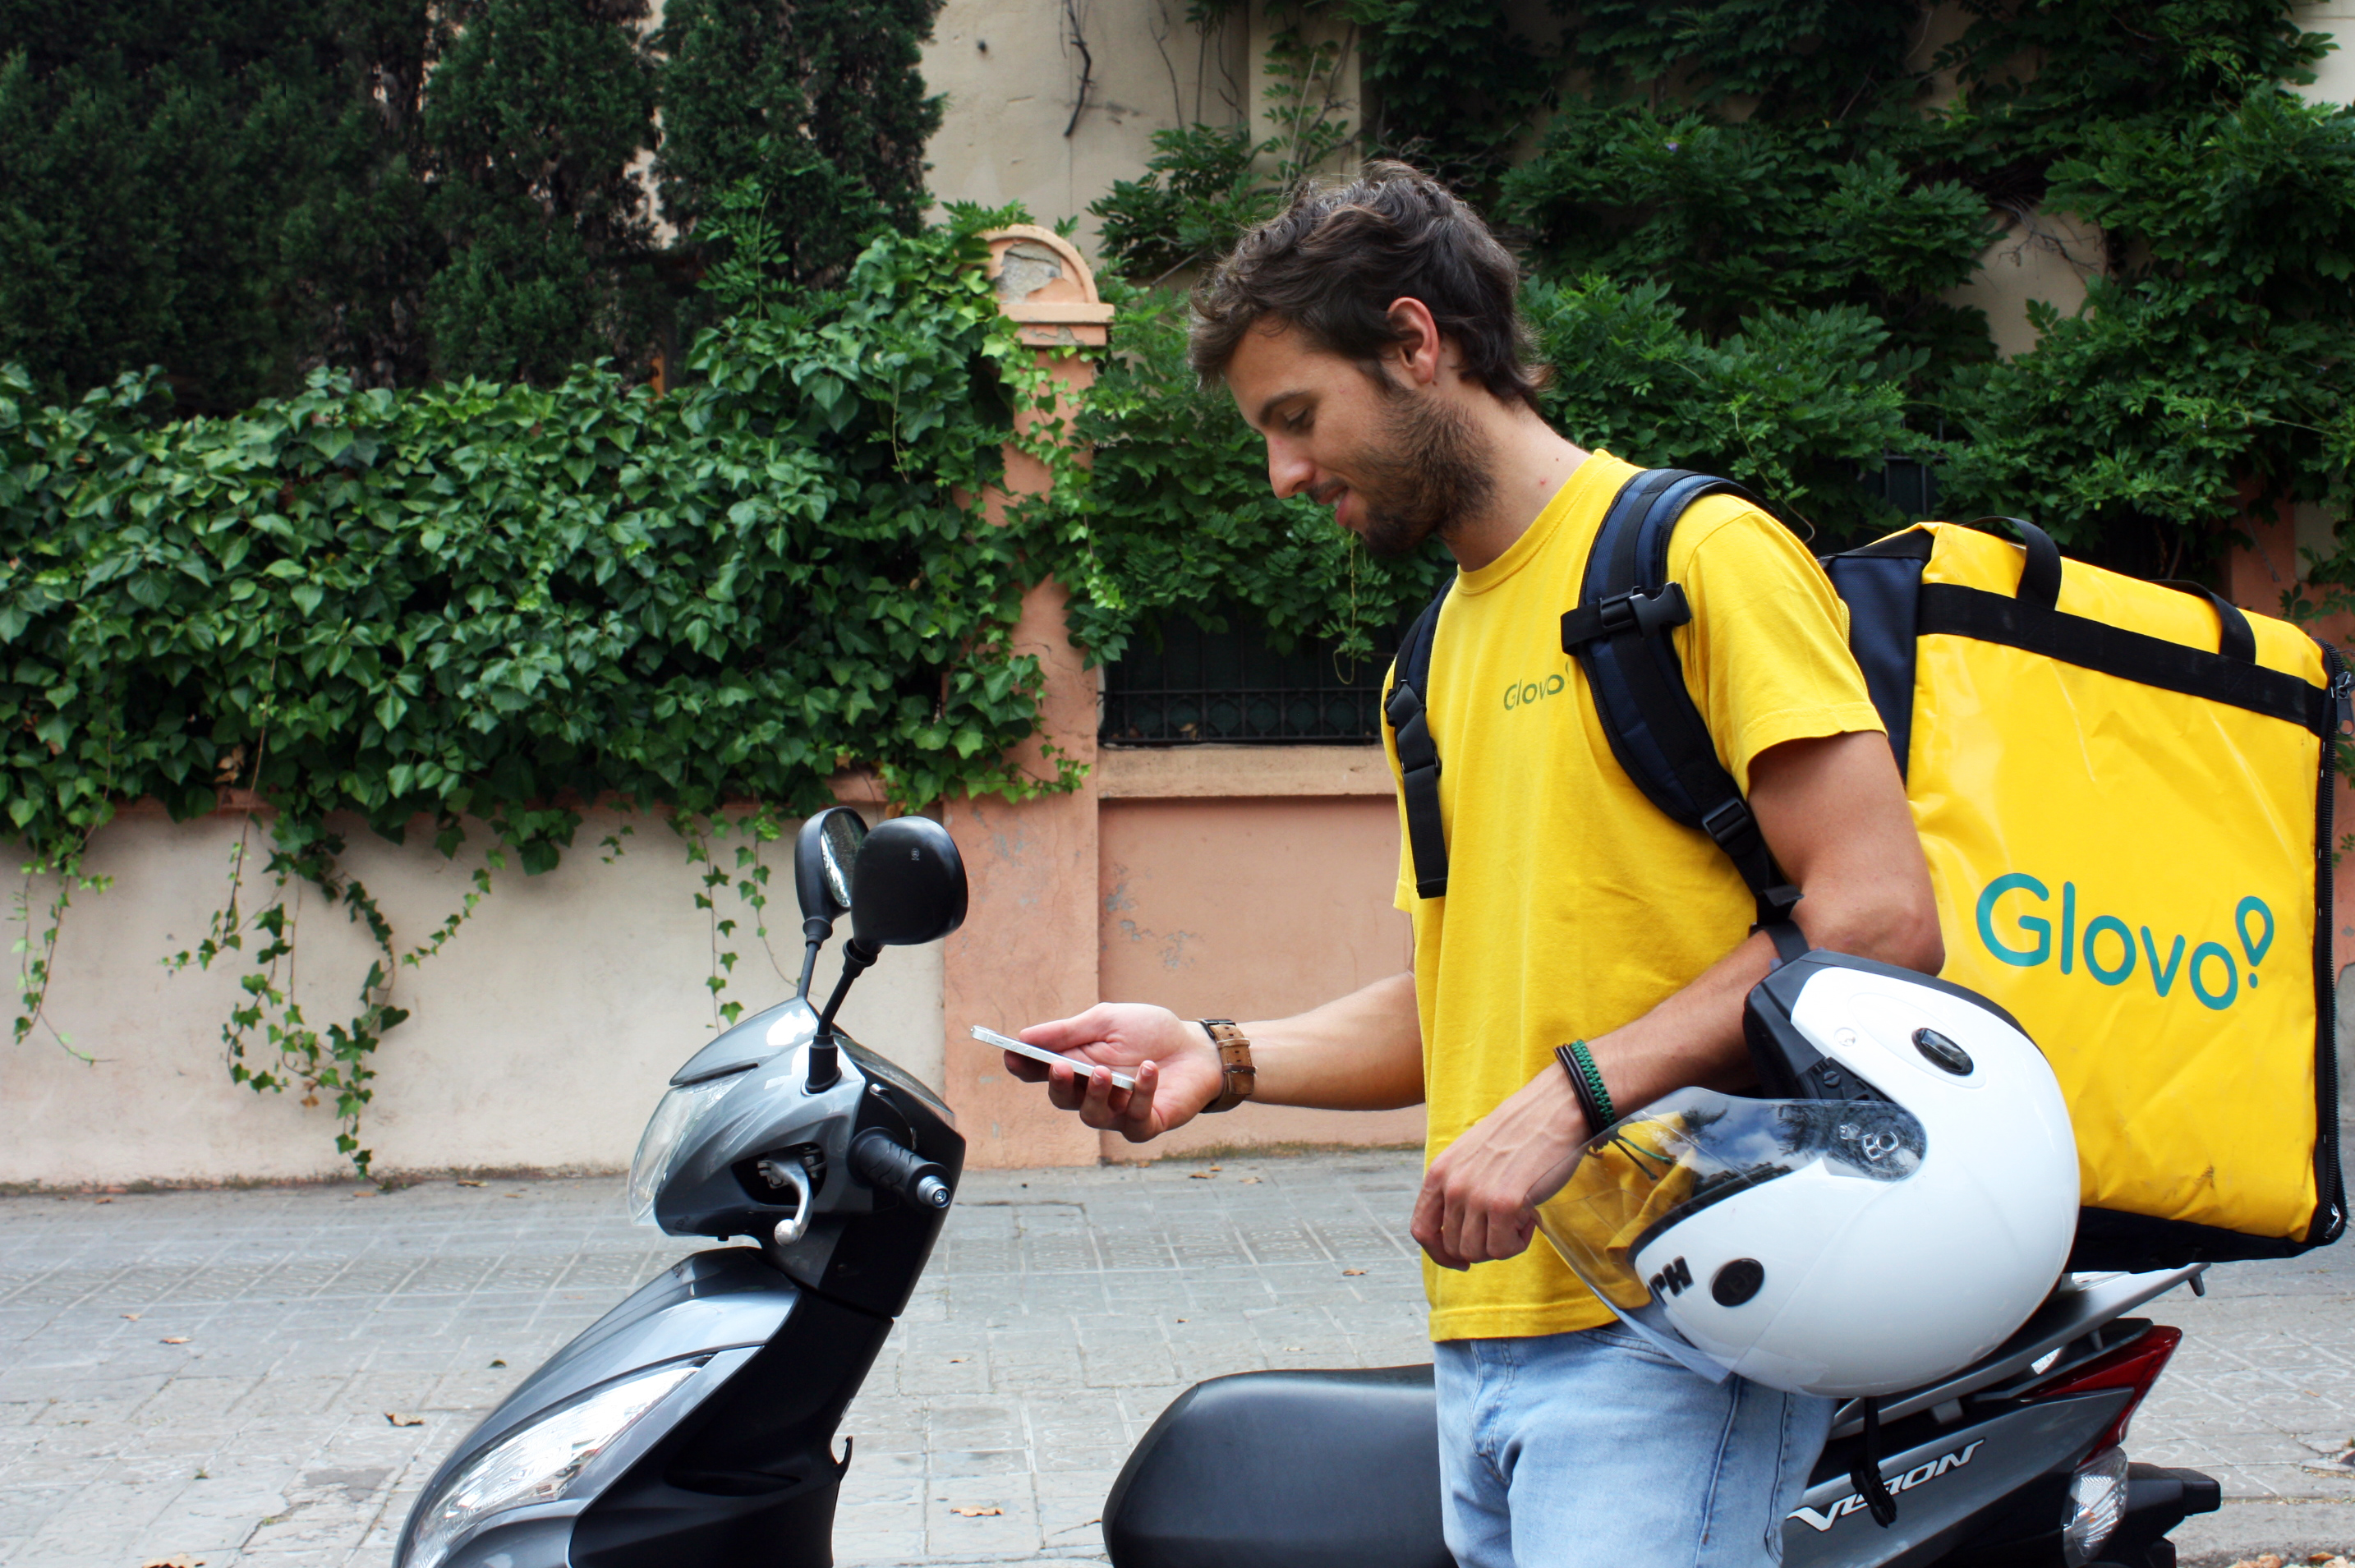 Now You Can Order Anything in the Most Convenient Way Possible With Glovo